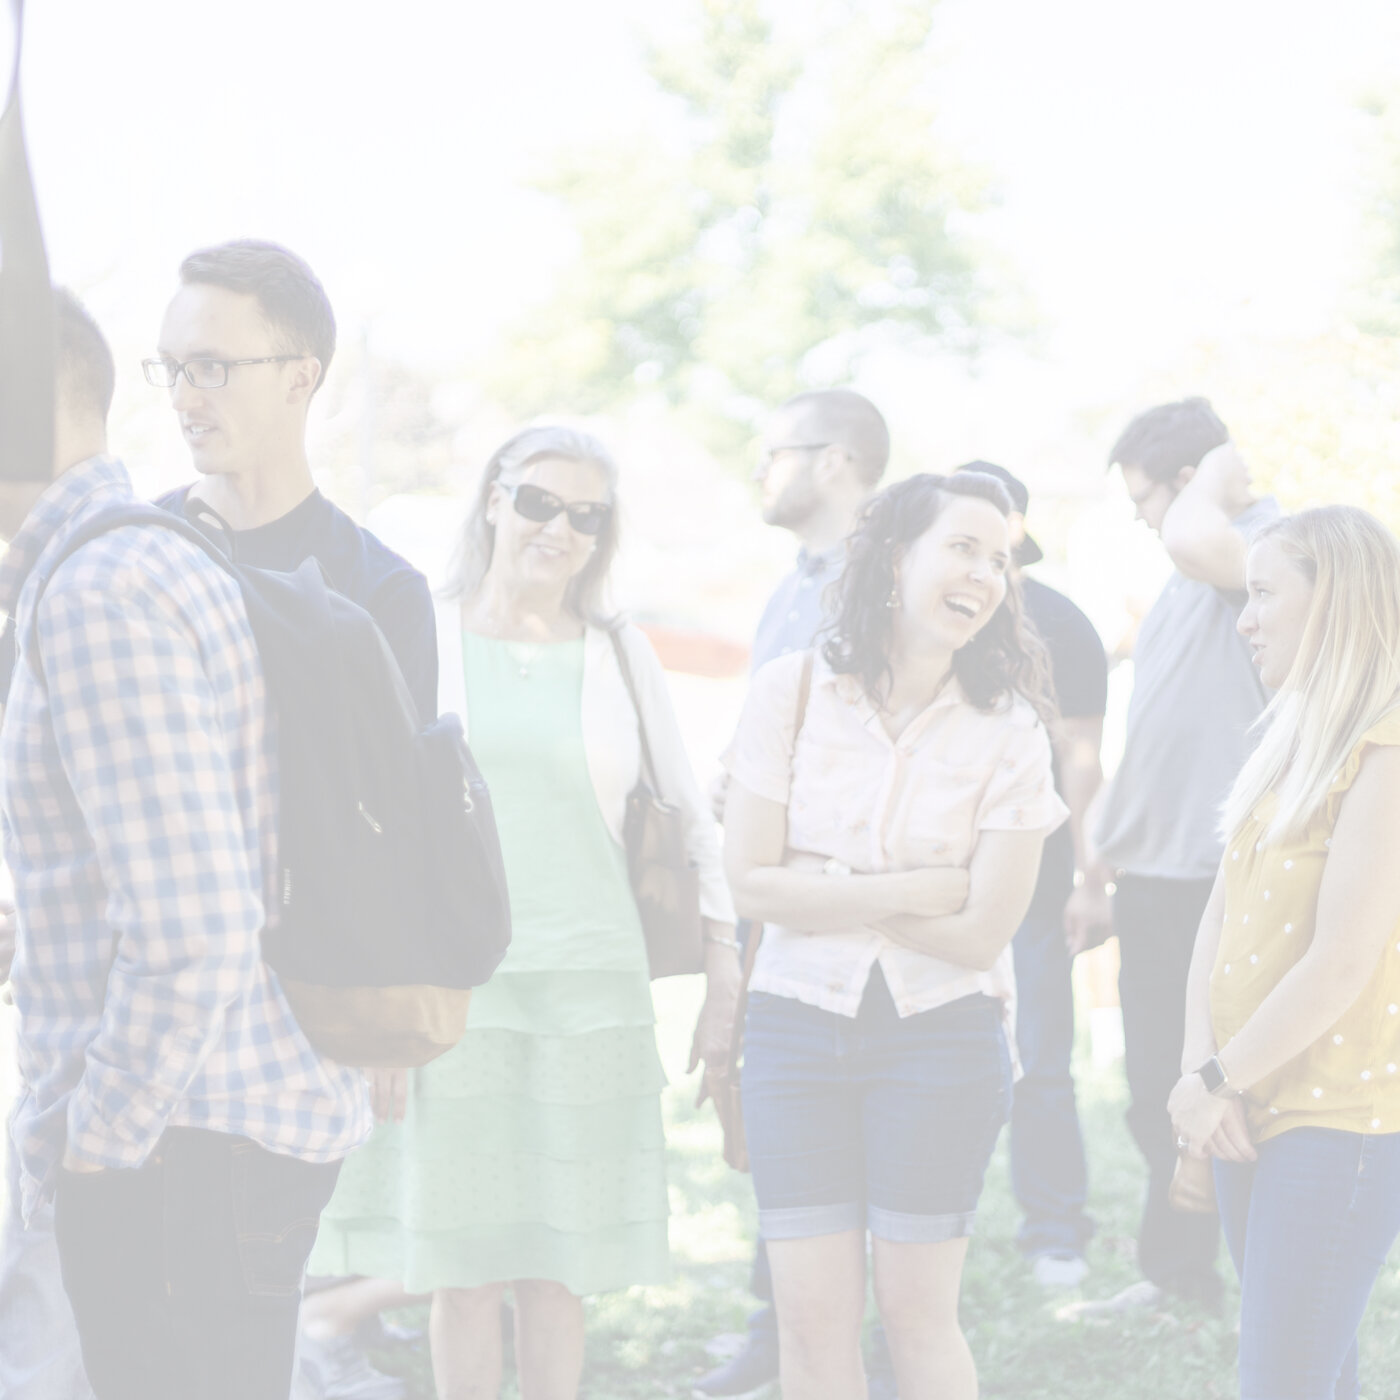 """Join a gospel community - """"Fellowship"""" is in our name. The best context for growing spiritually, throwing parties, serving our city, and life is… community."""